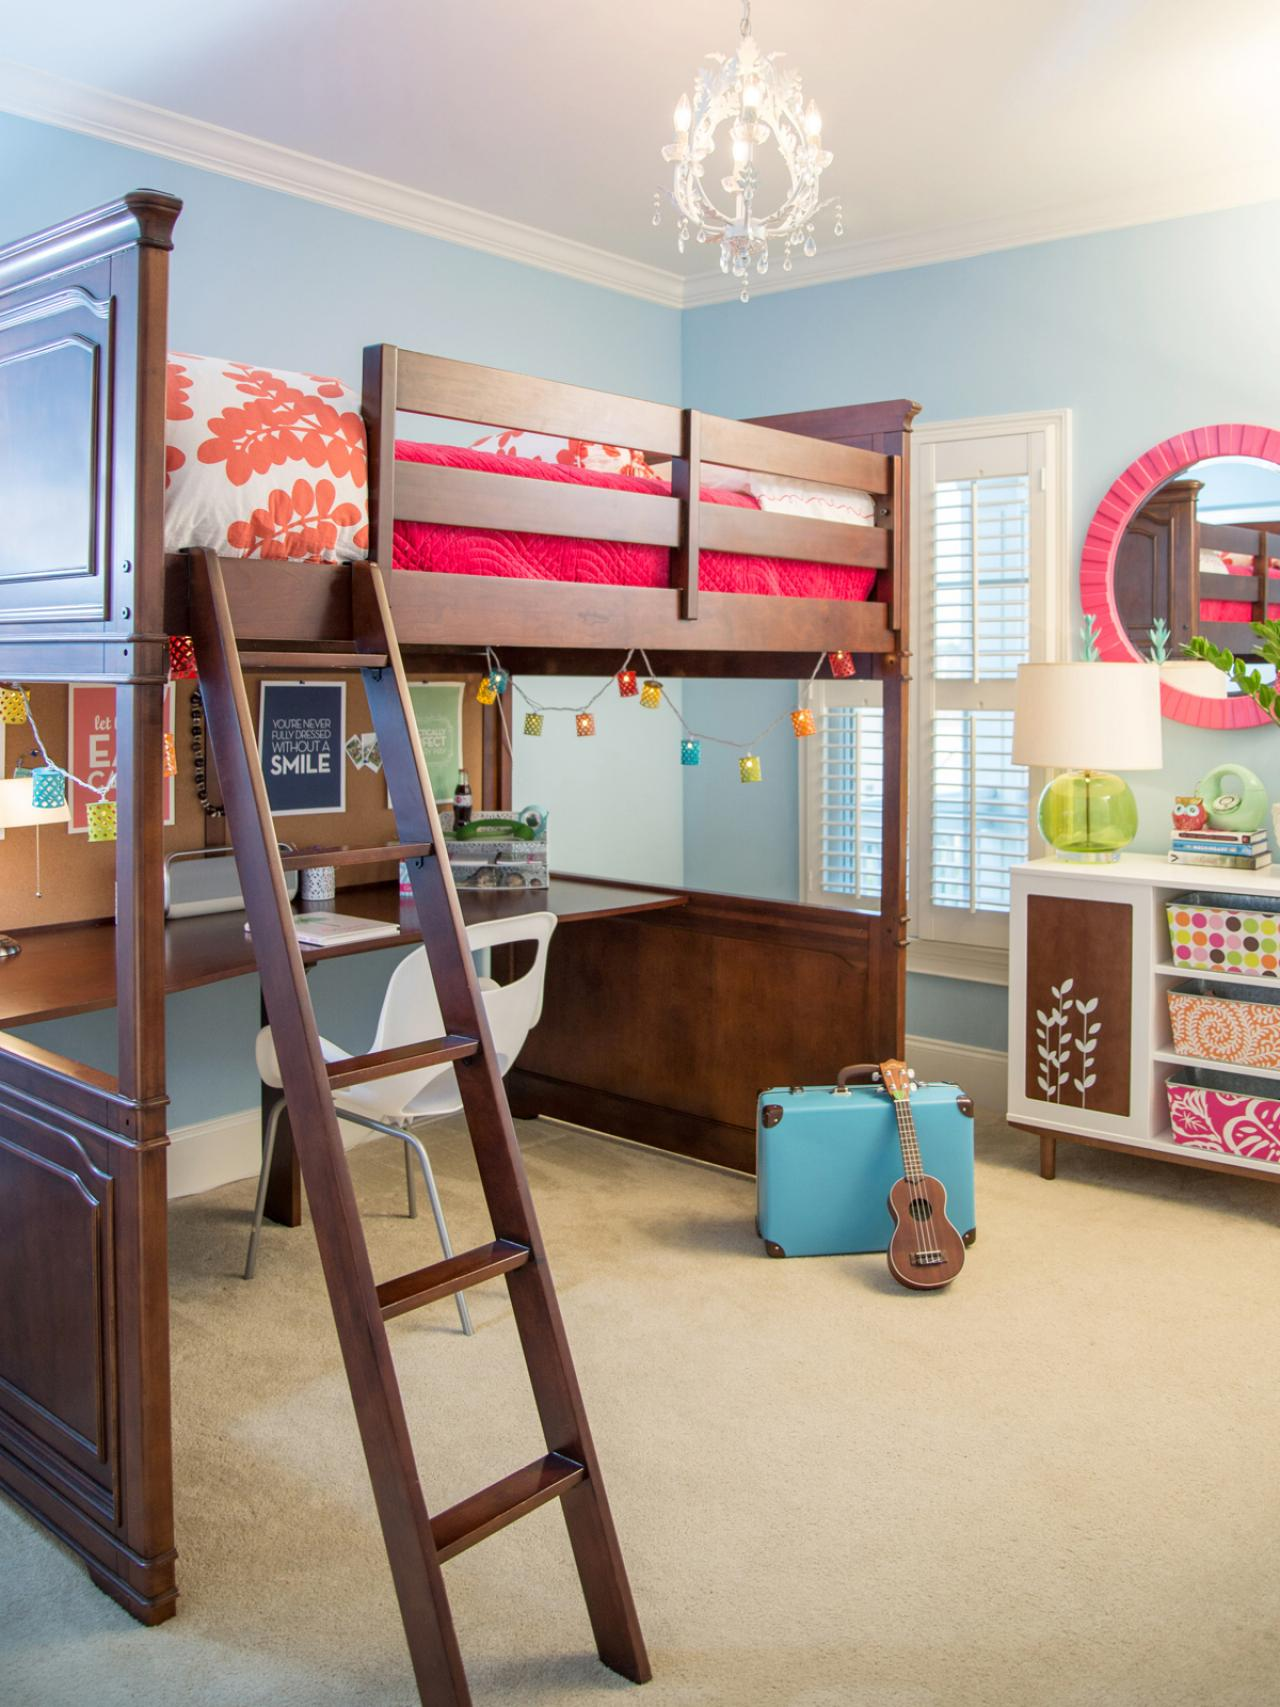 DP_Susie-Fougerousse-Blue-Girls-Room_s3x4.jpg.rend.hgtvcom.1280.1707